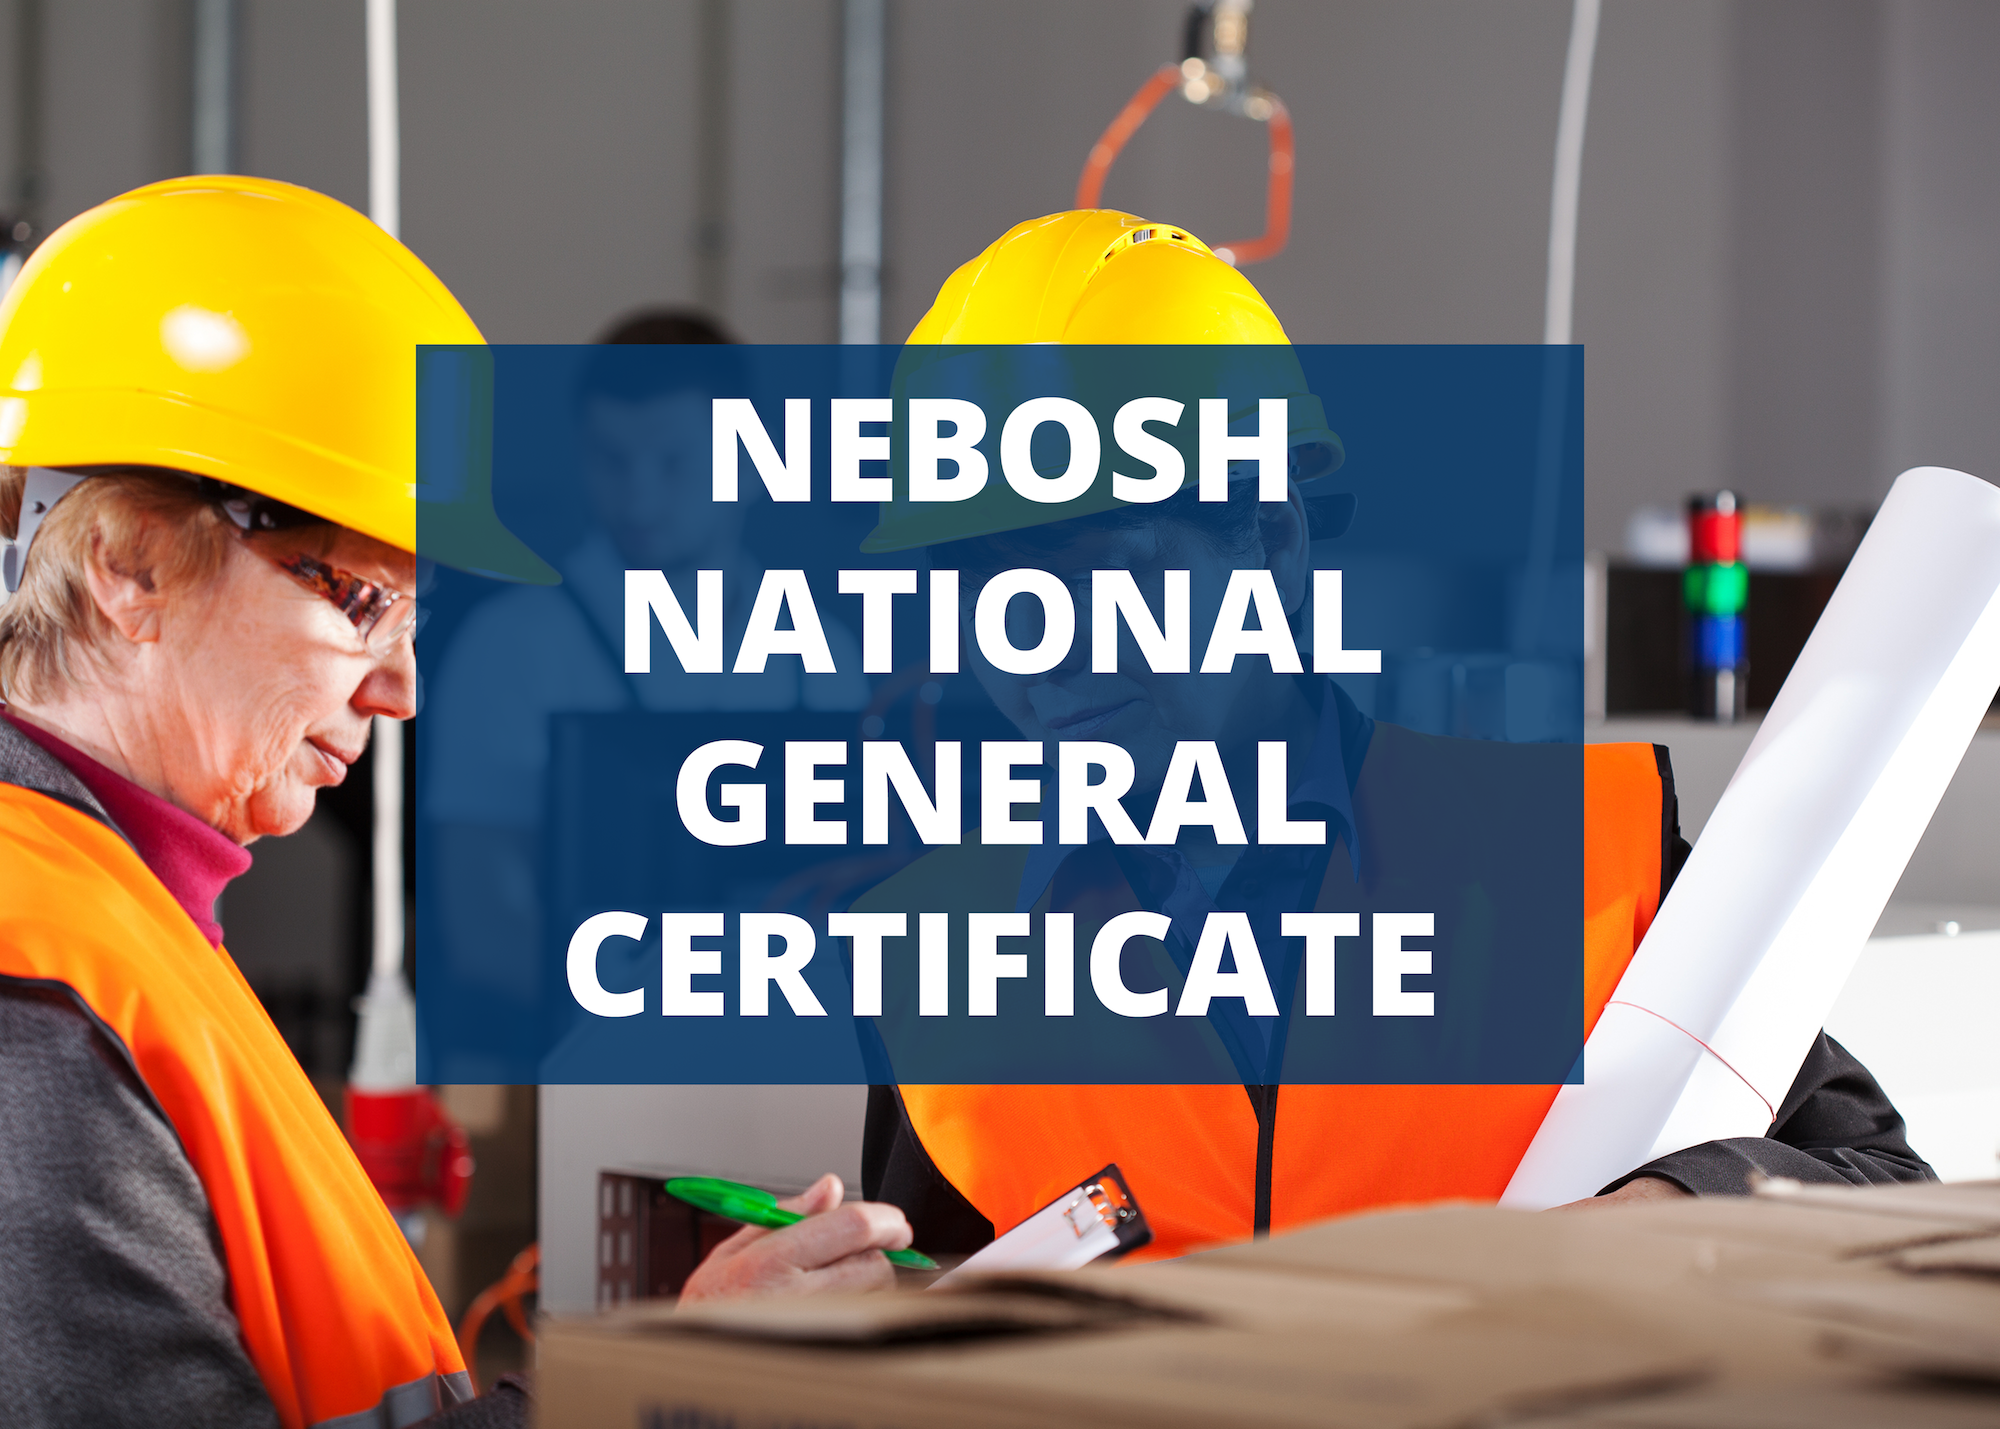 NEBOSH NGC Qualification